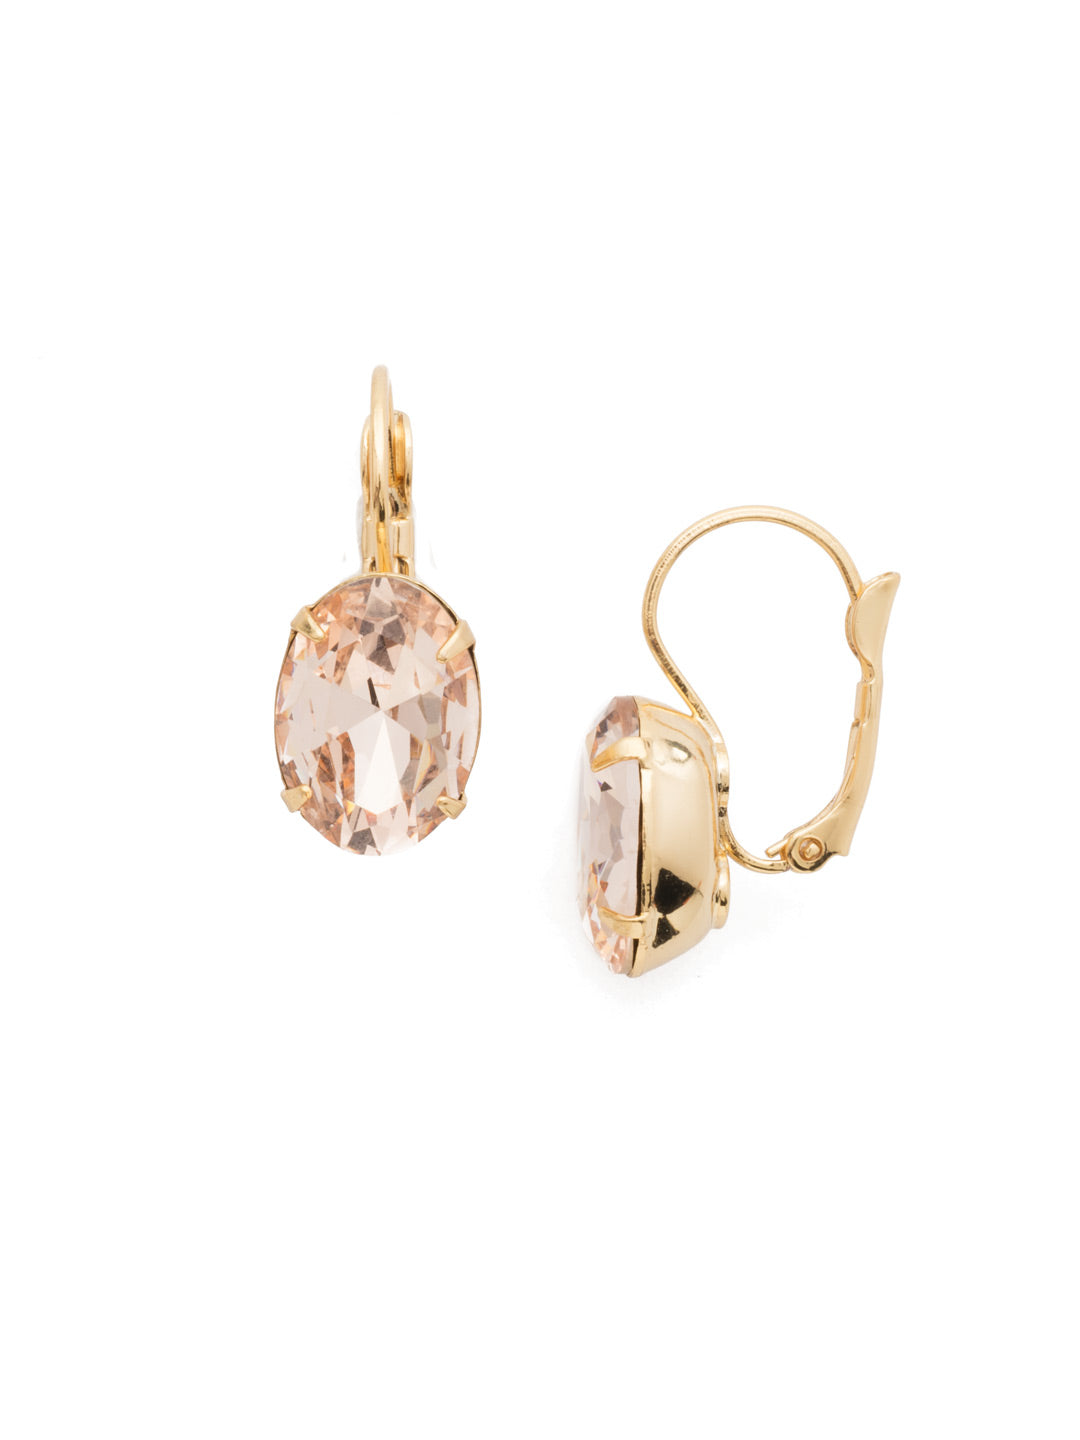 Oval Cut French Wire Earrings - ECR20BGSRC